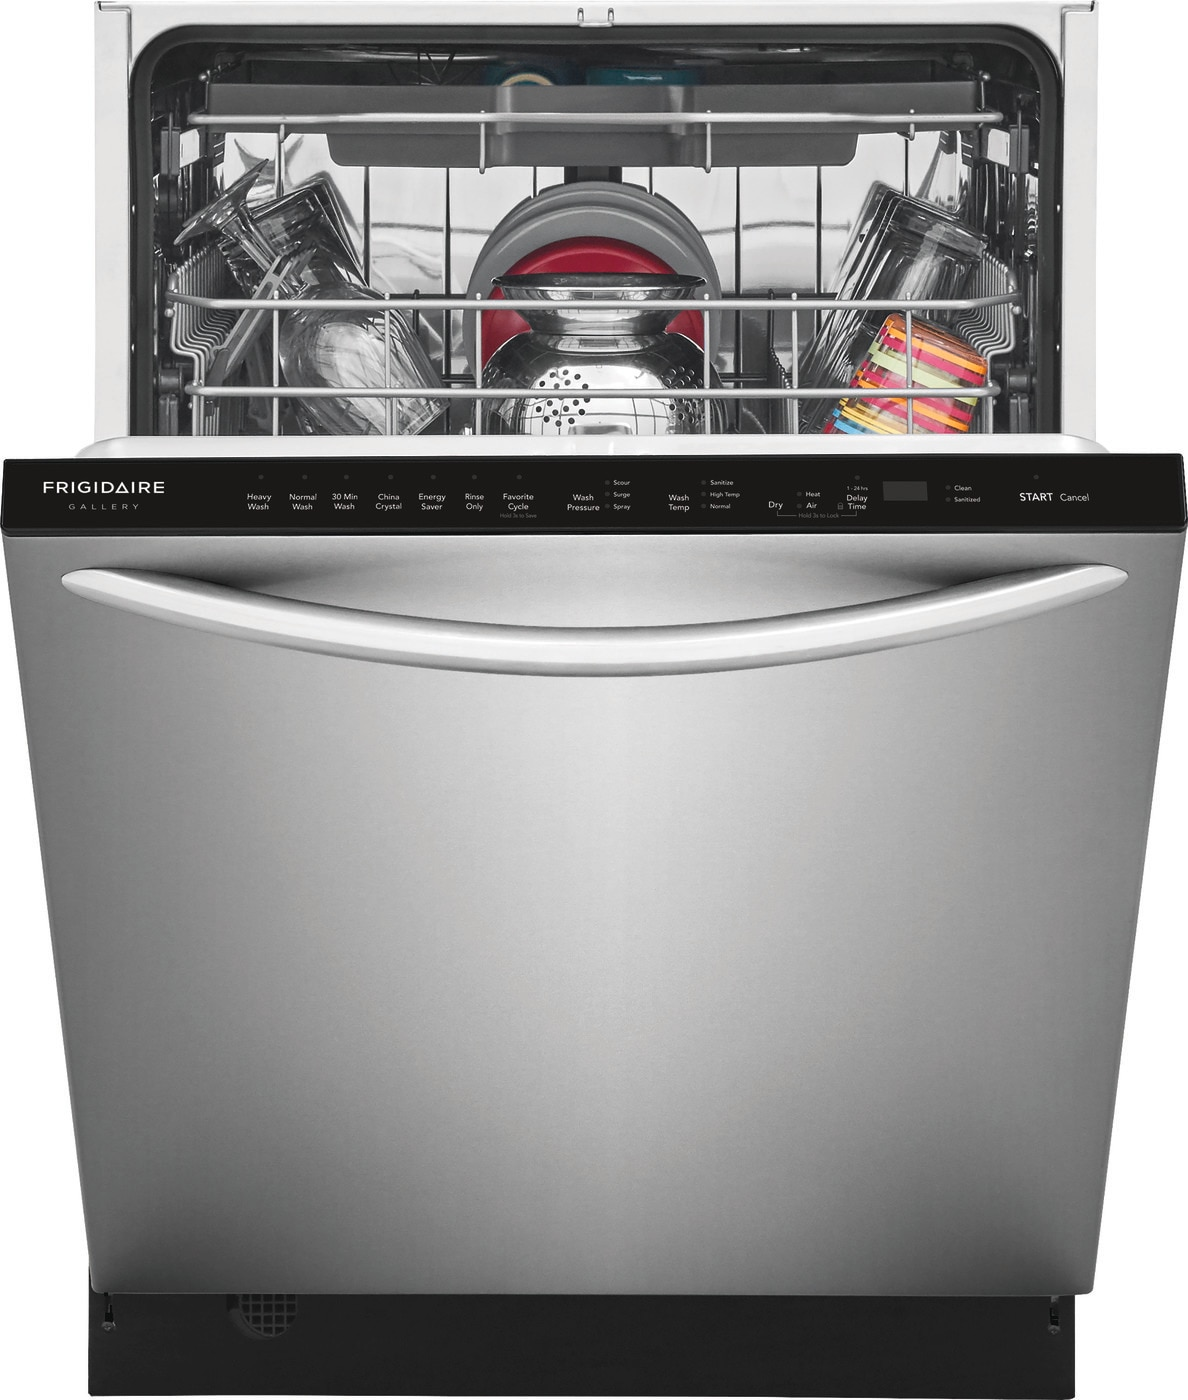 Frigidaire Gallery 24 Built In Dishwasher With Evendry System Stainless Steel Fgid2479sf